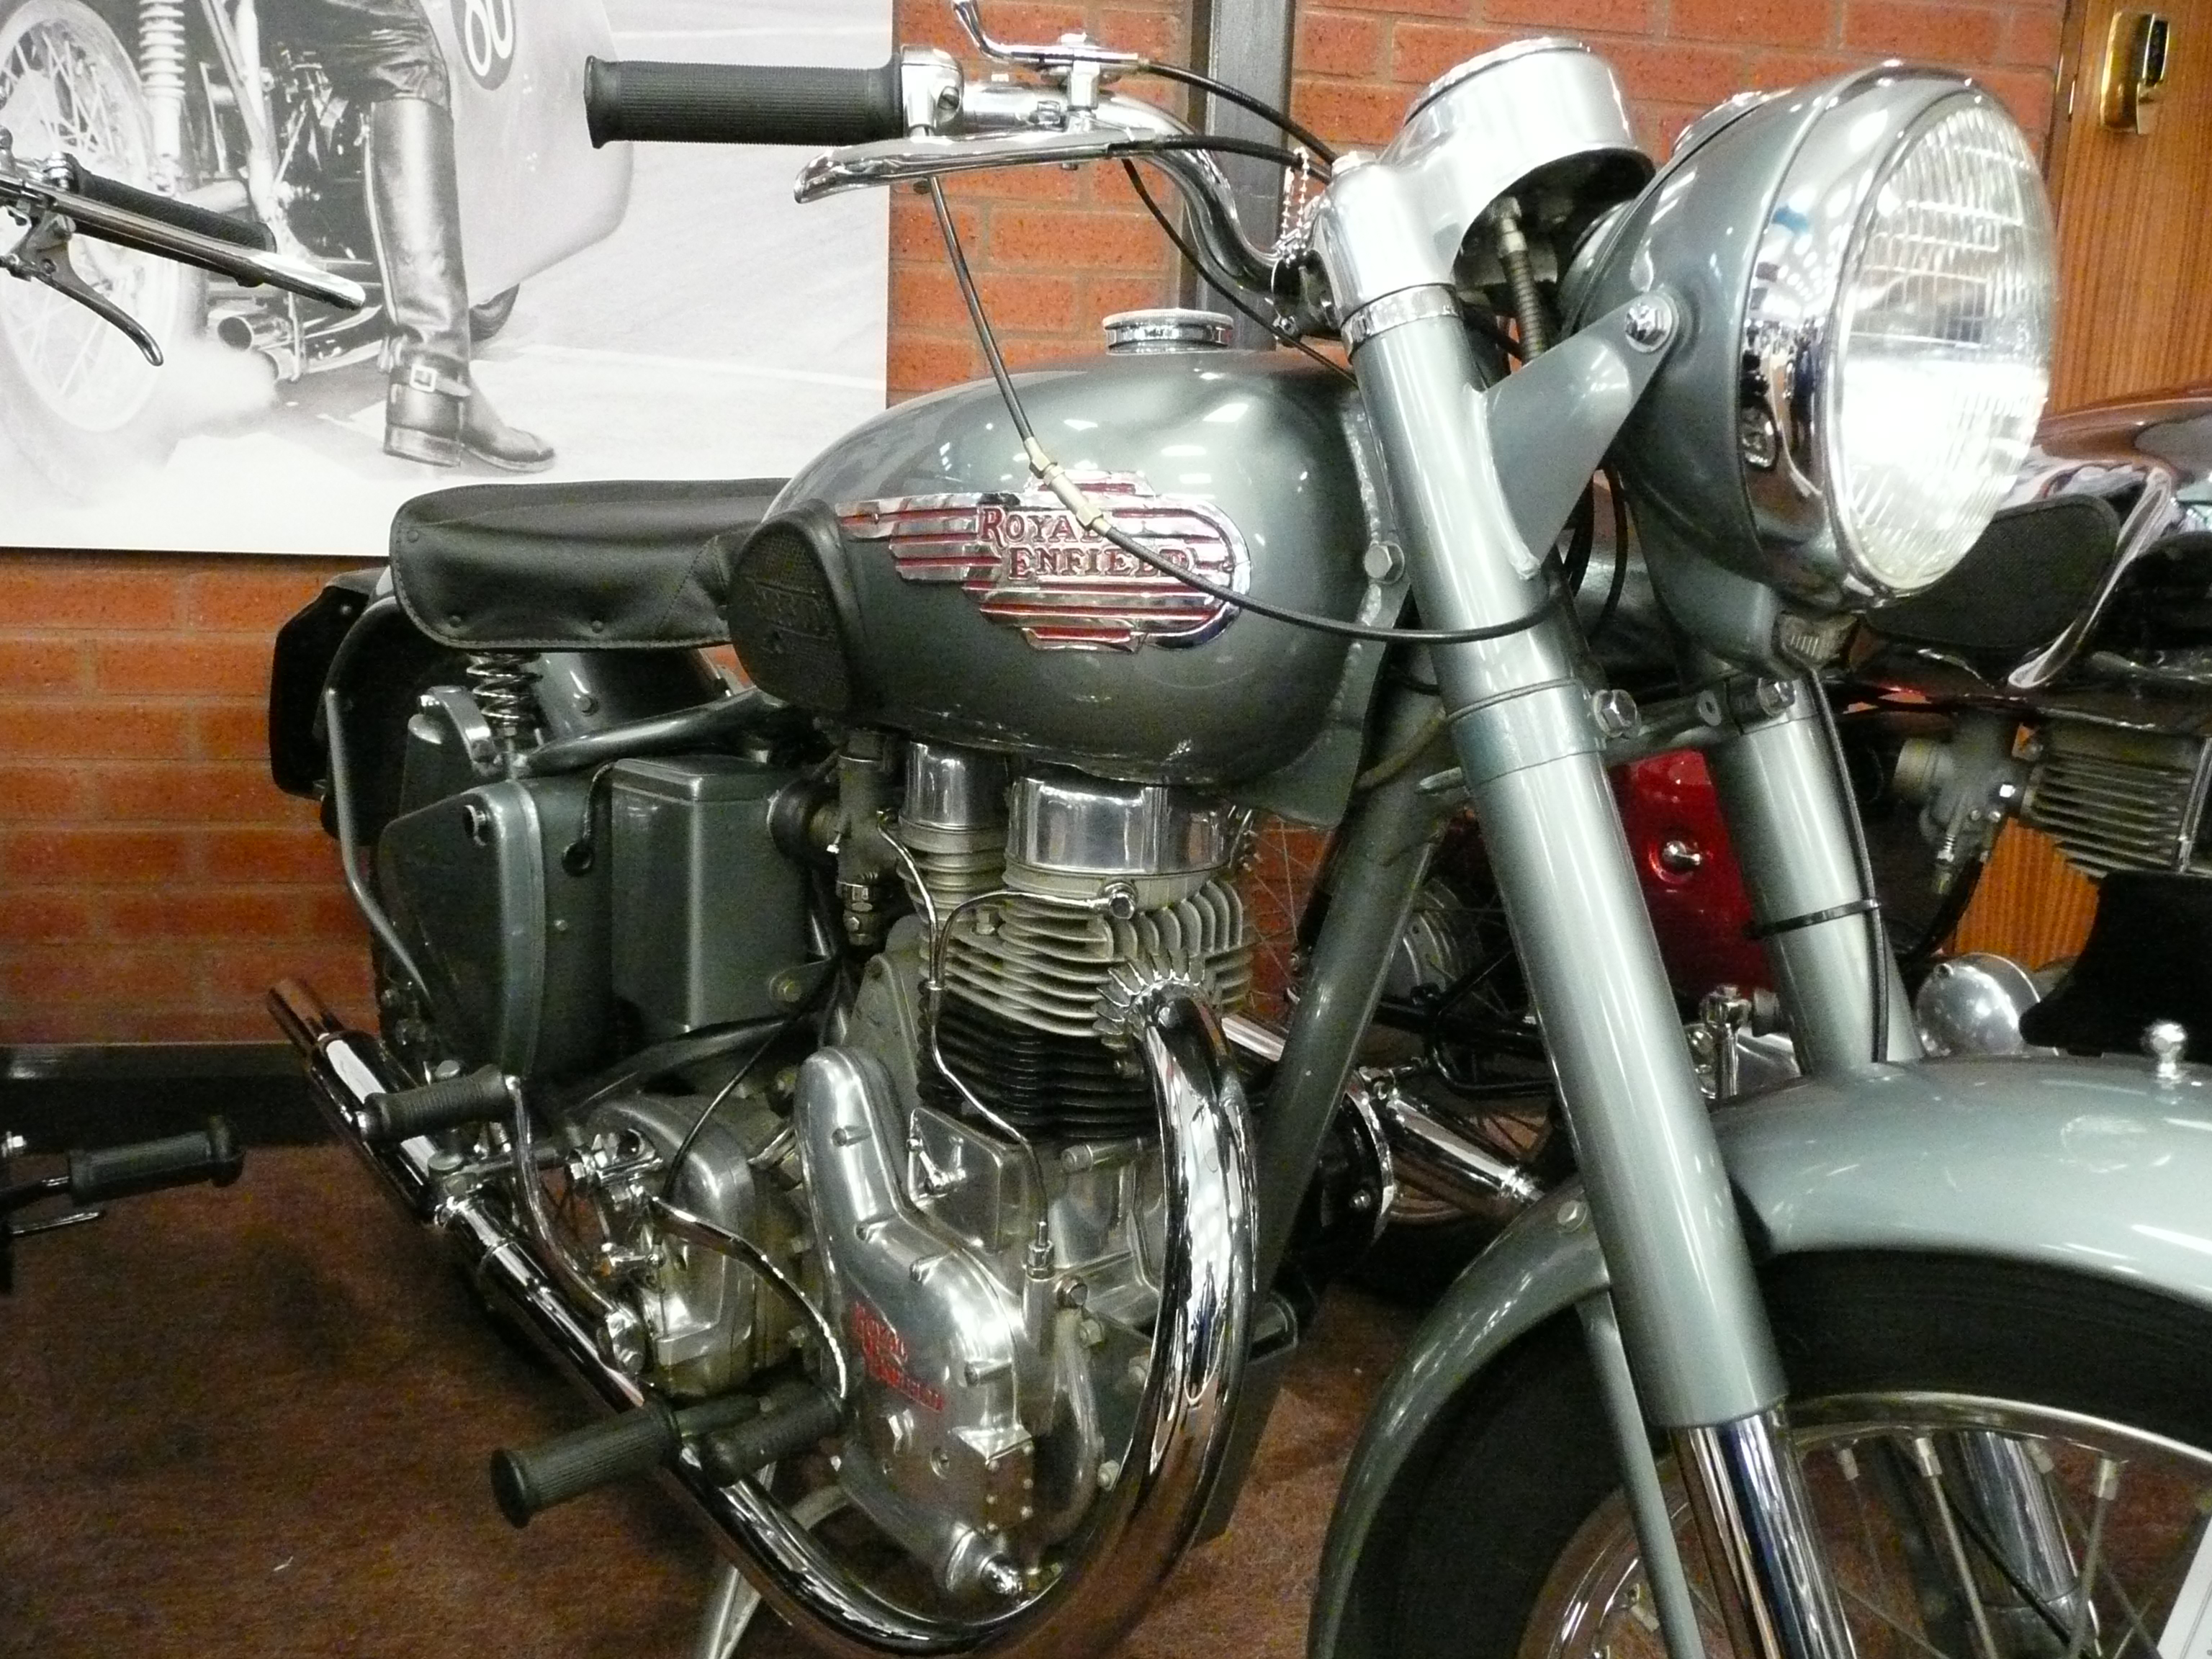 Royal Enfield Bullet 350 Army 2001 images #123104